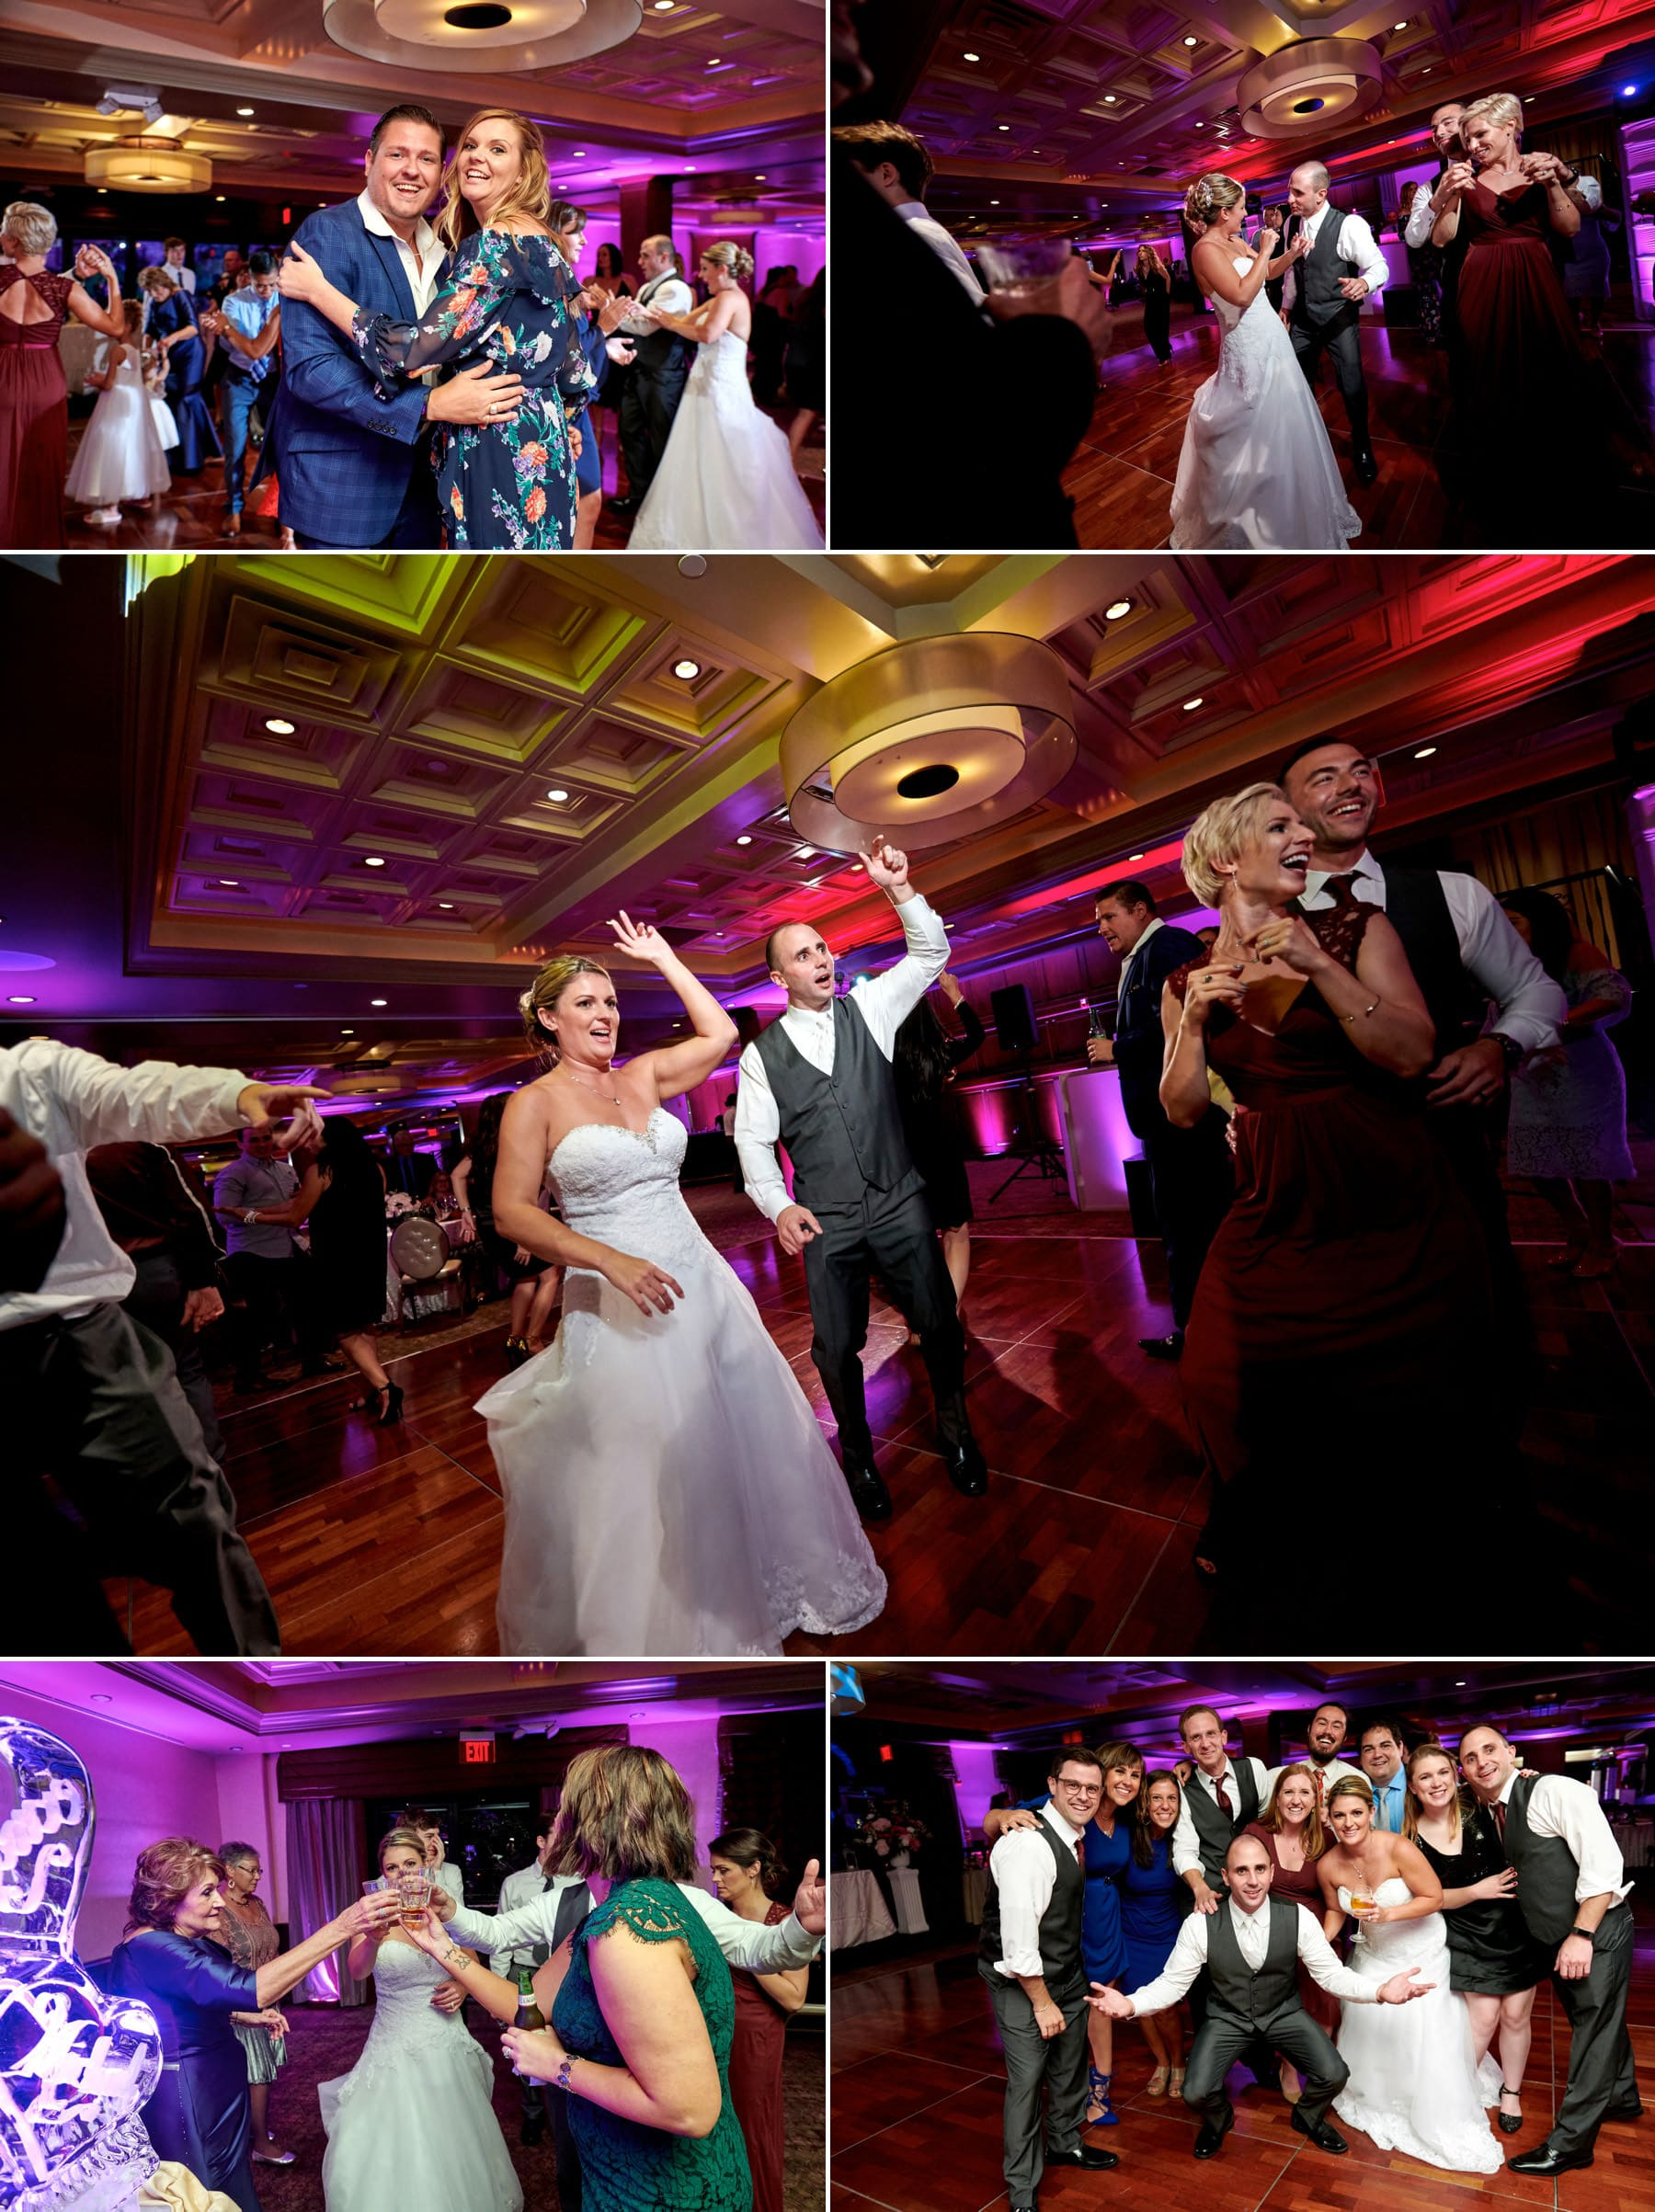 wedding reception photos at The Imperia